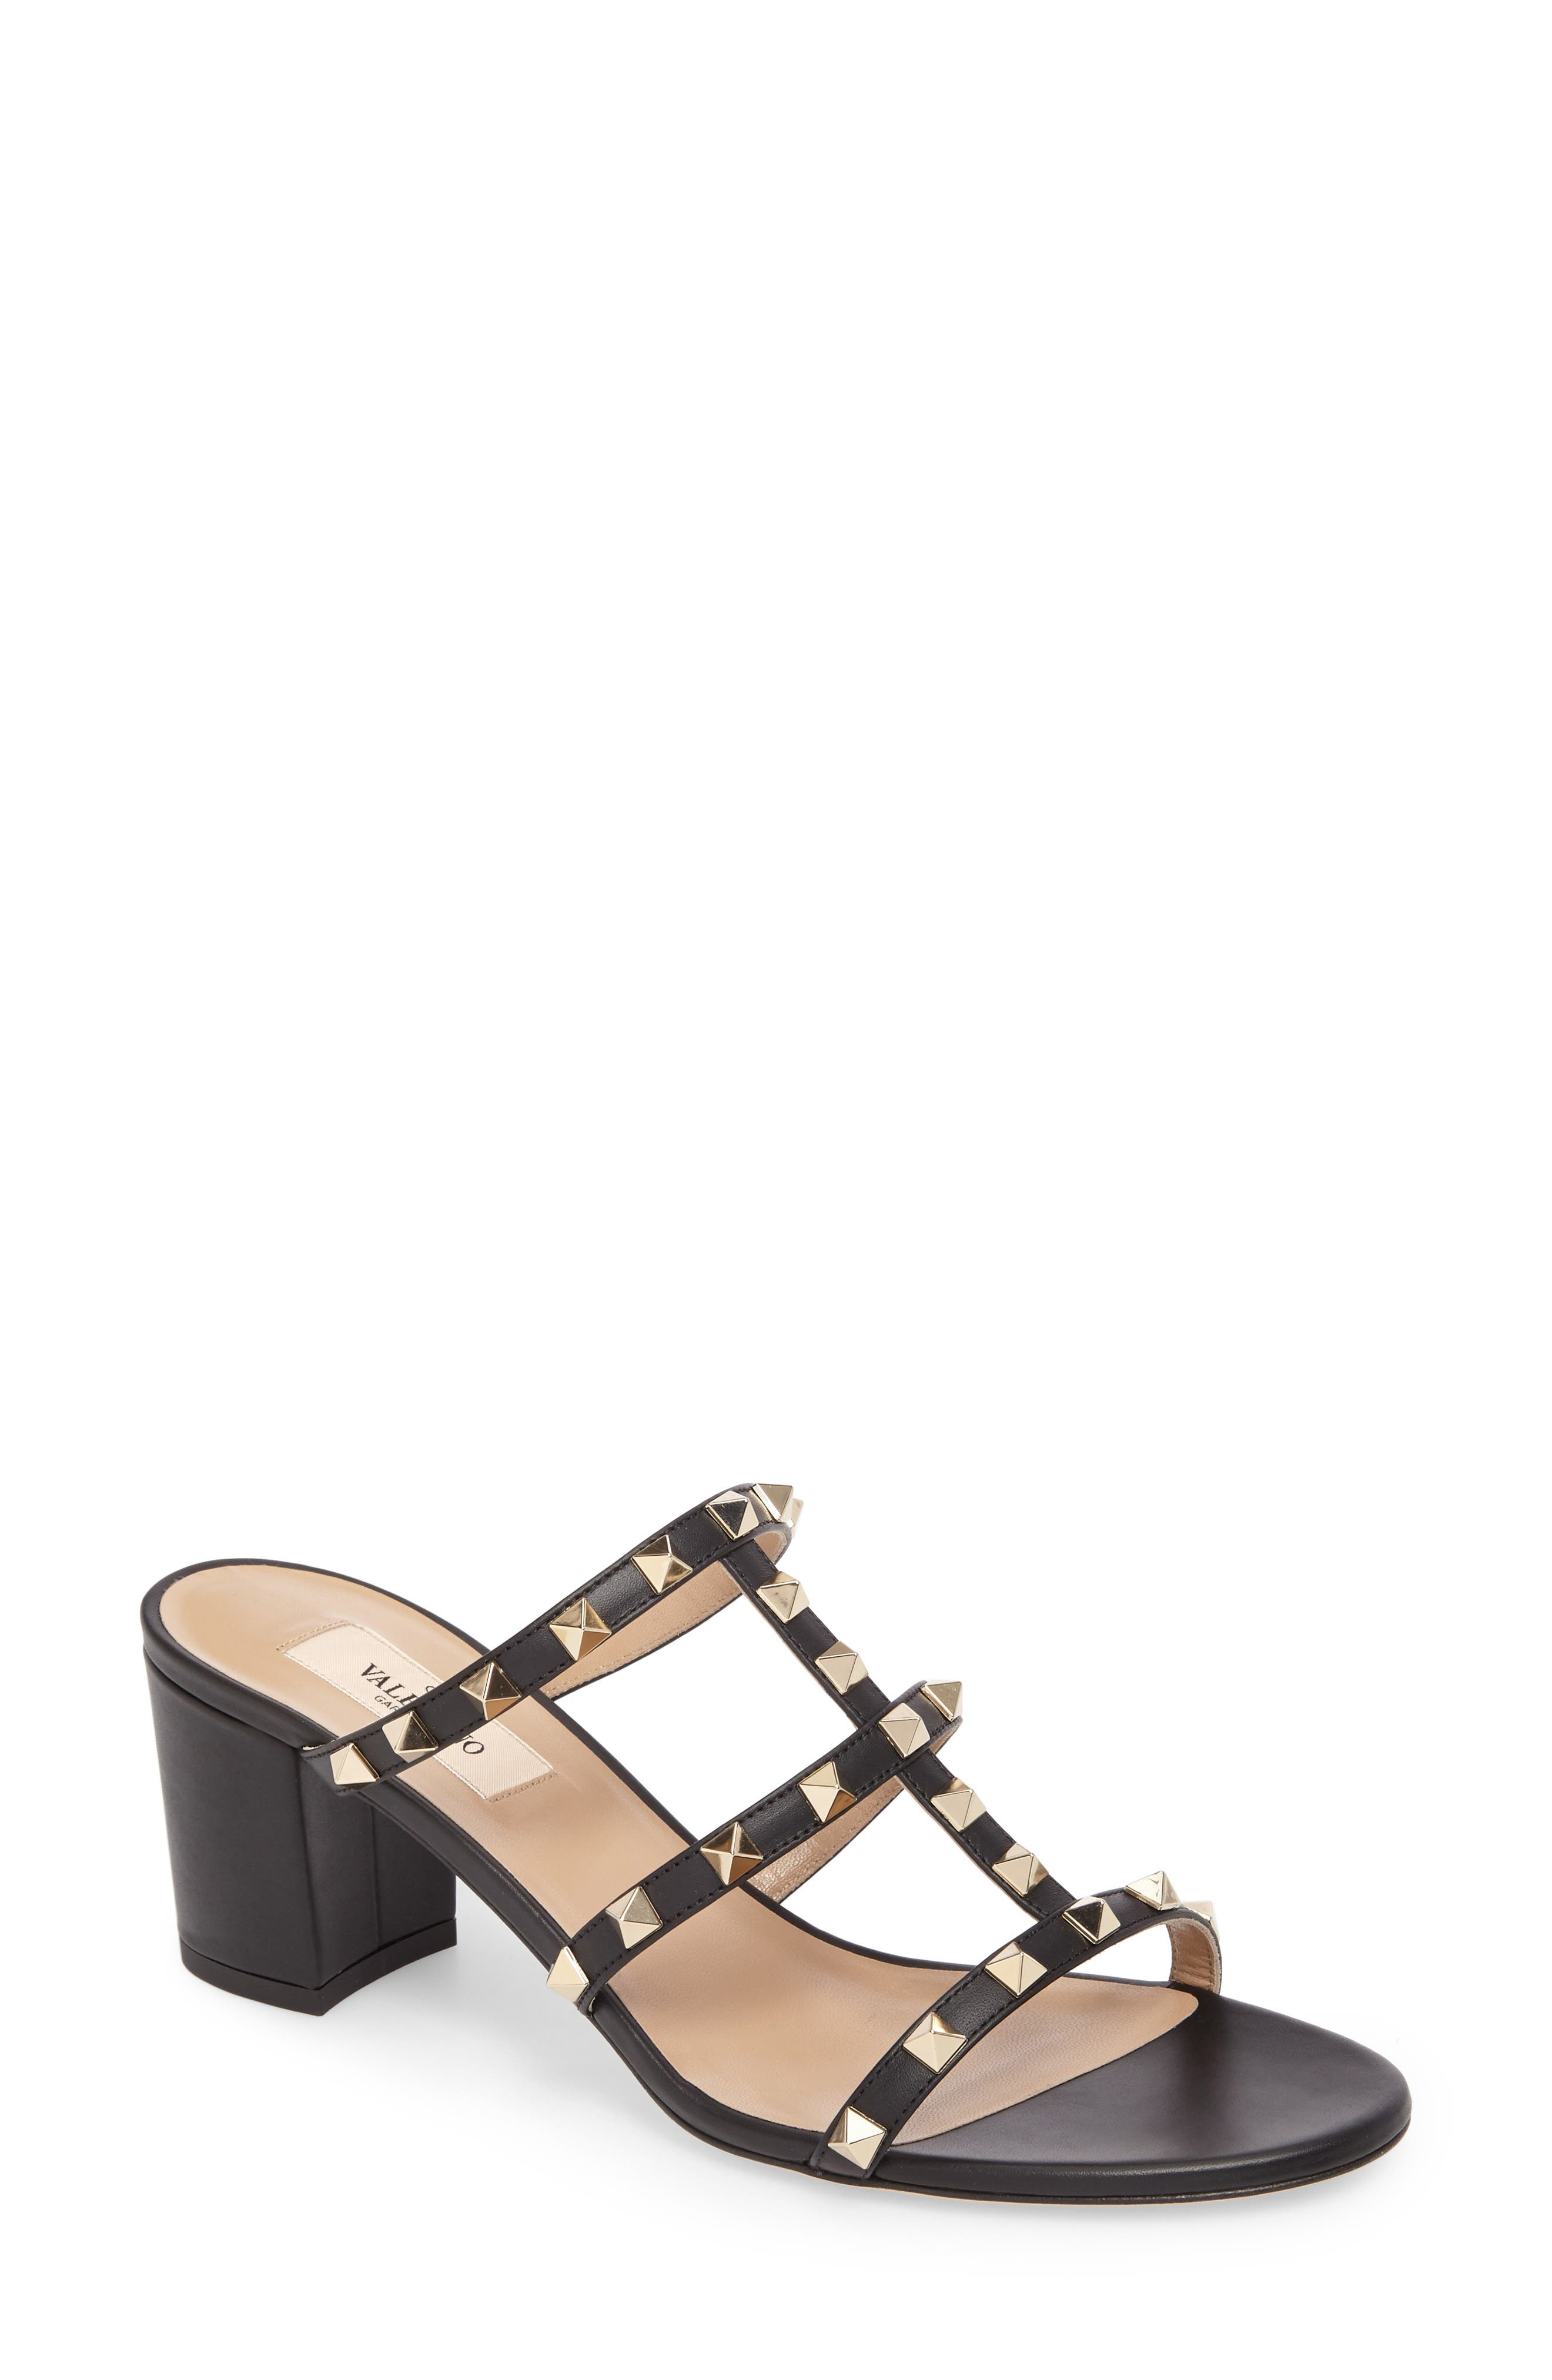 Rockstud Slide Sandal,                             Main thumbnail 1, color,                             002